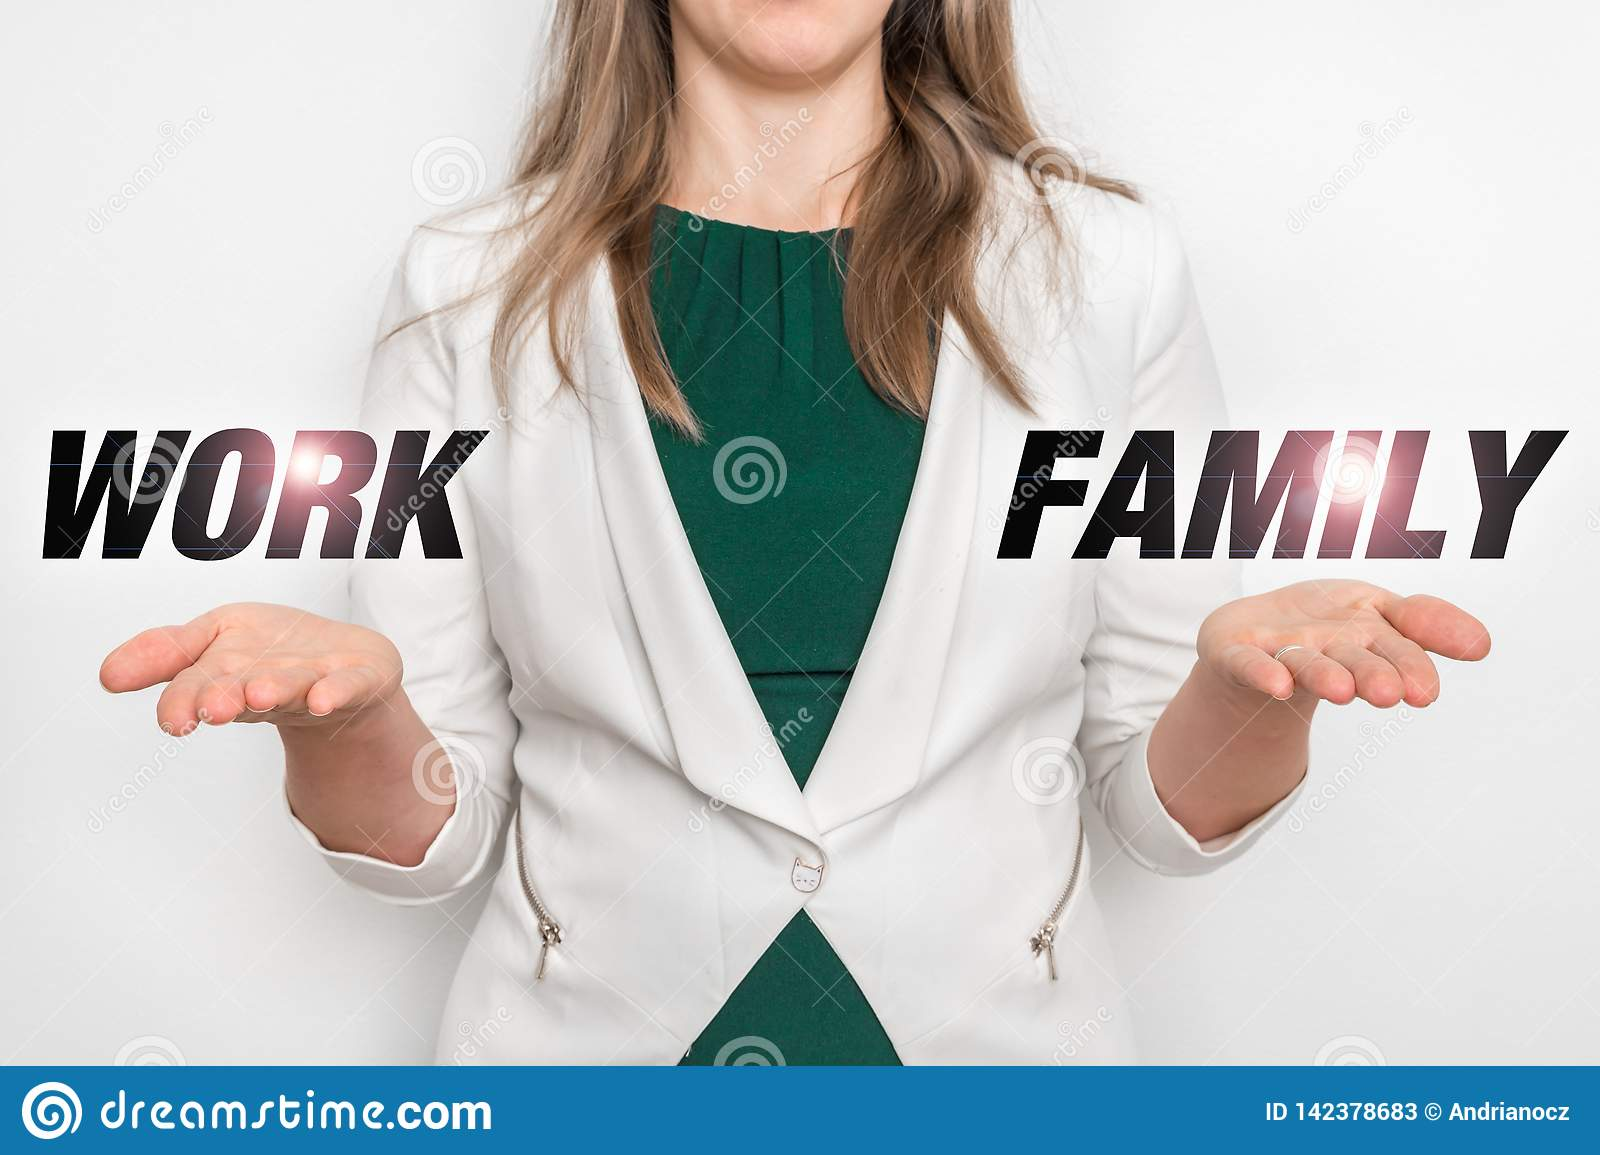 Personal choice between work and family